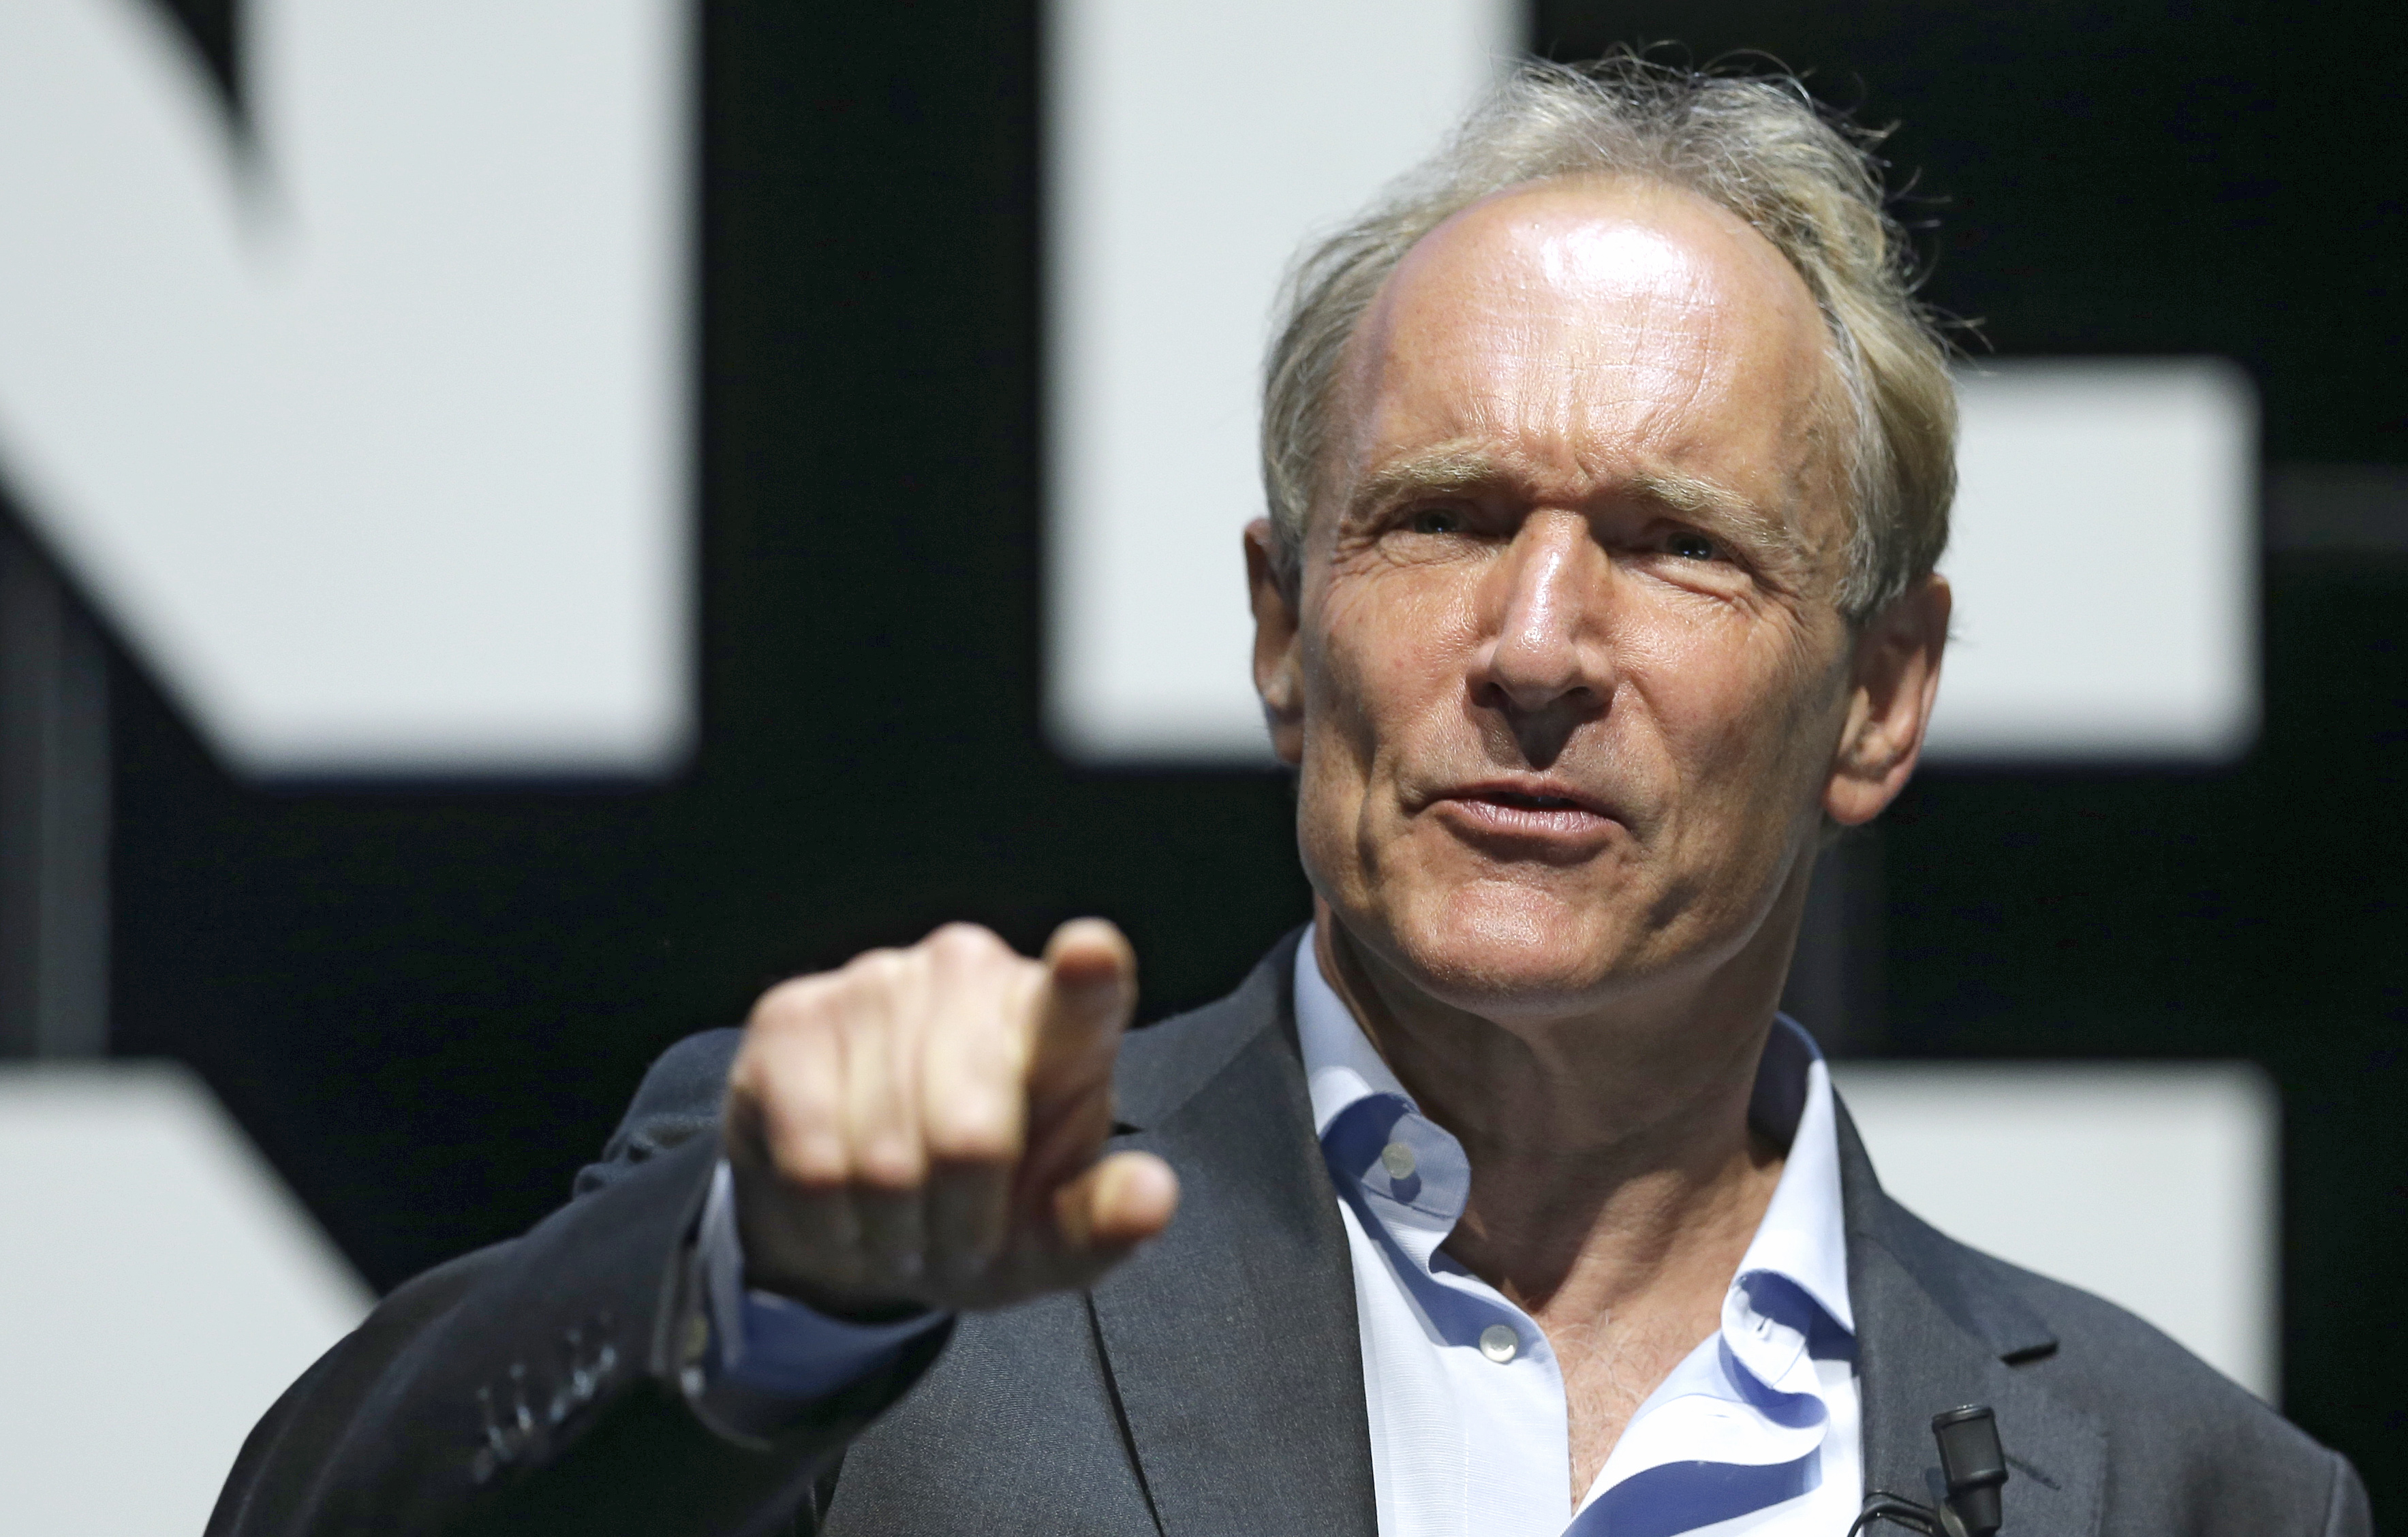 English computer scientist Tim Berners Lee, best known as the inventor of the World Wide Web attends the Cannes Lions 2015, International Advertising Festival in Cannes, southern France, Tuesday, June 23, 2015. Berners Lee implemented the first successful communication between a Hypertext Transfer Protocol (HTTP) client and server via the Internet. The Cannes Lions International Advertising Festival is a world's meeting place for professionals in the communications industry.(AP Photo/Lionel Cironneau)